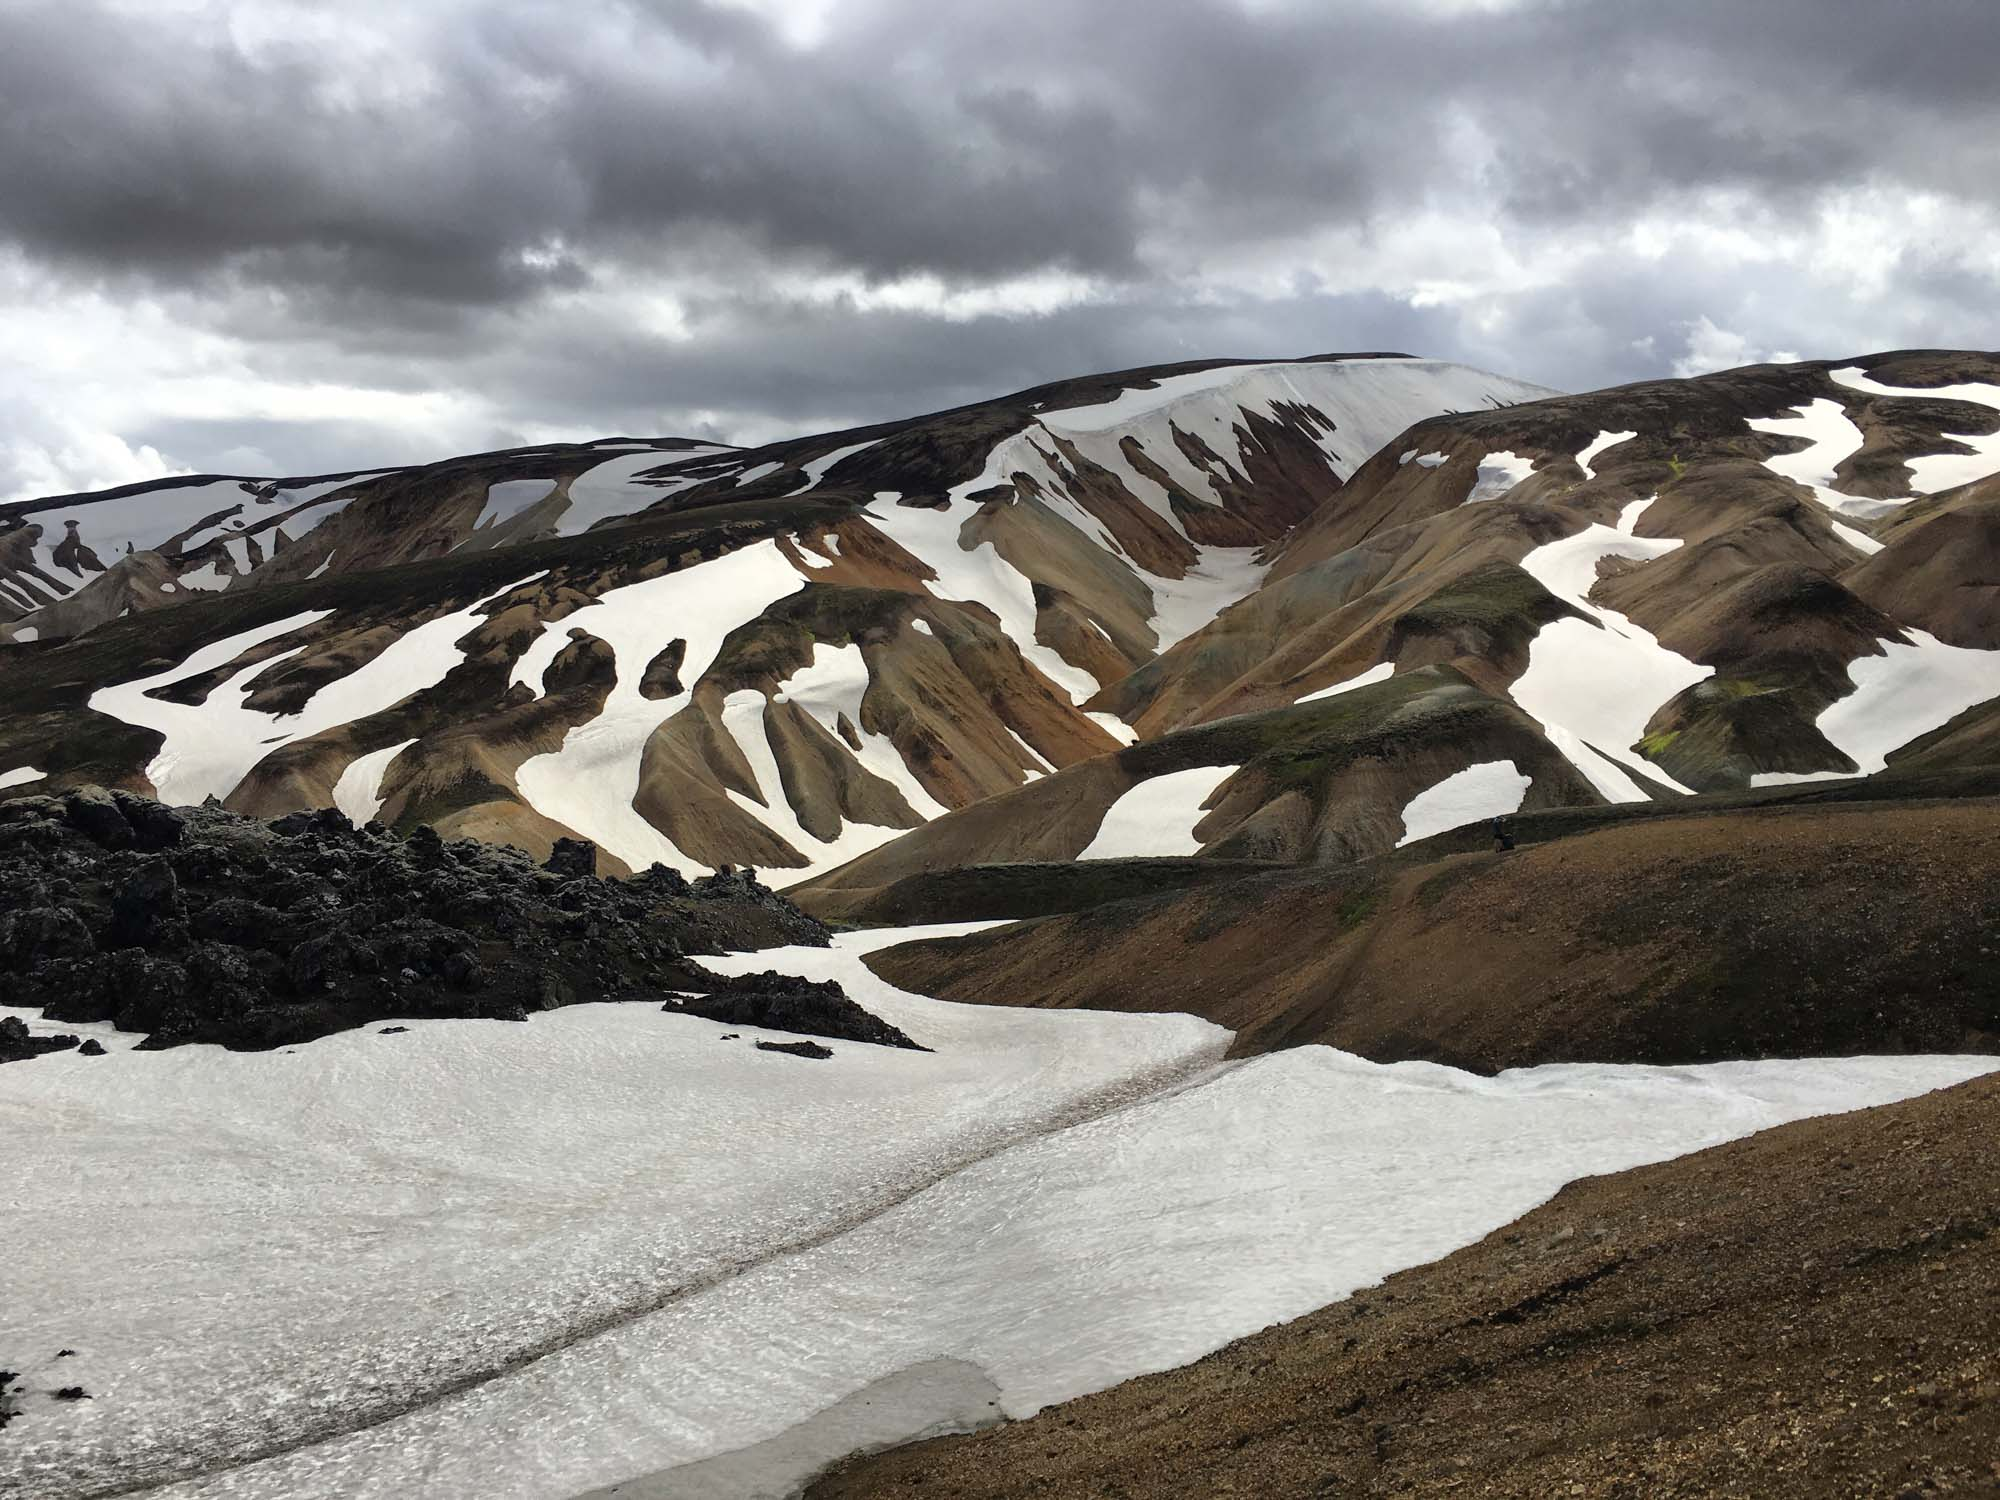 Icelandic mountains views at Landmannalaugar